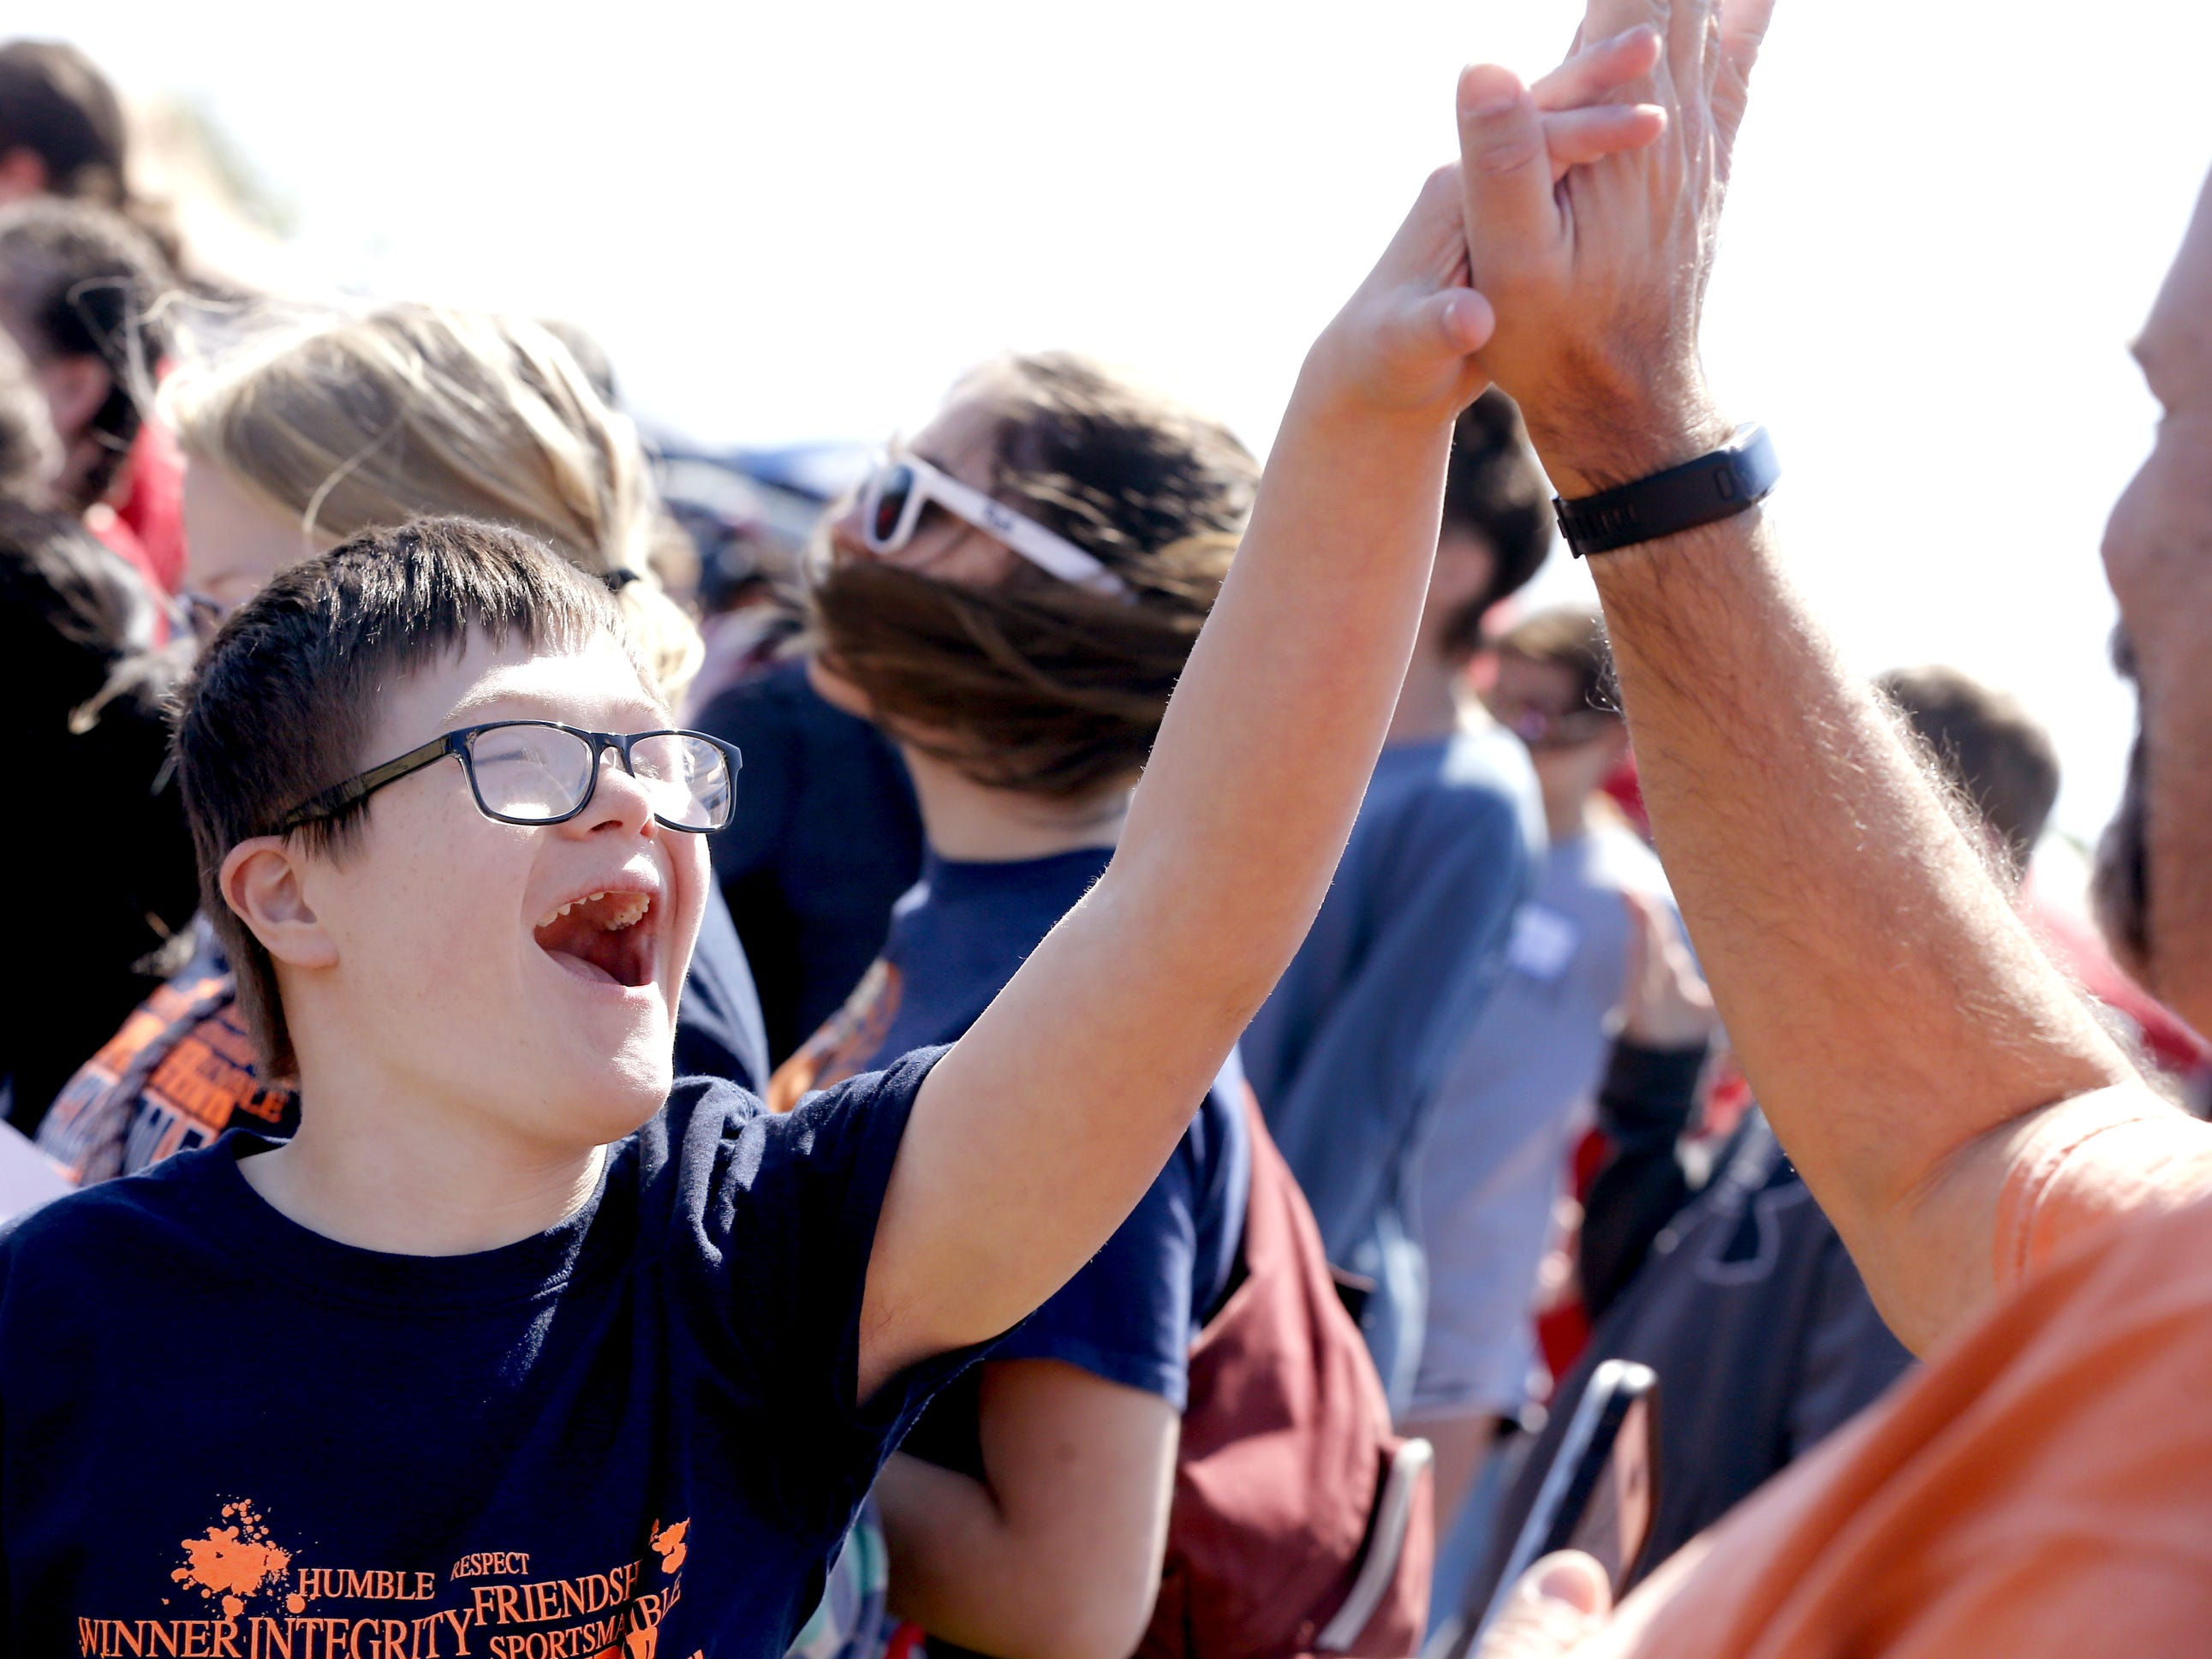 Patrick Shupp of Blackman Middle school gives his dad Bill Shupp several high-fives after running a race in the Area 16 Special Olympics featuring the Rutherford County and Murfreesboro City Schools along with other independent groups held Olympic Games at MTSU's soccer field and Track stadium on Friday, April 13, 2018.